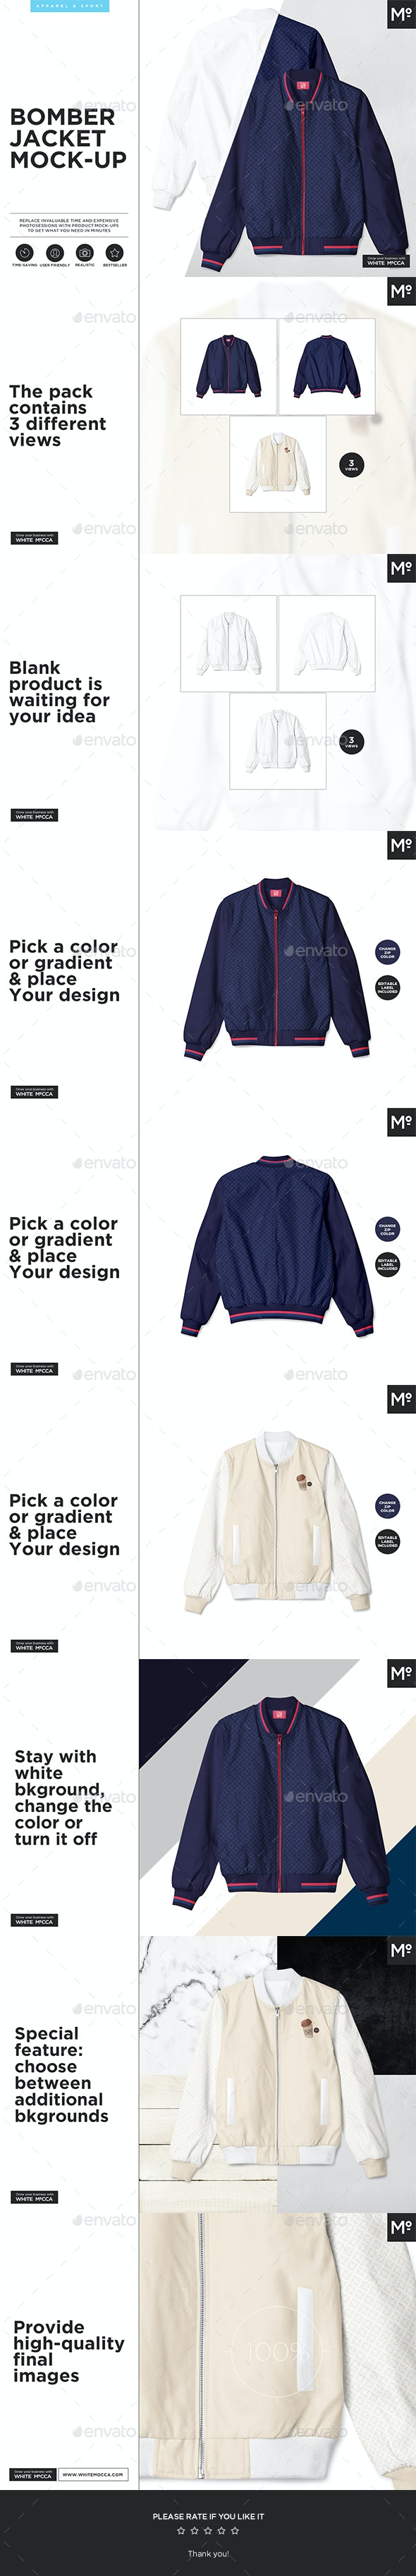 The Bomber Jacket Mock Up By Mocca2go Graphicriver